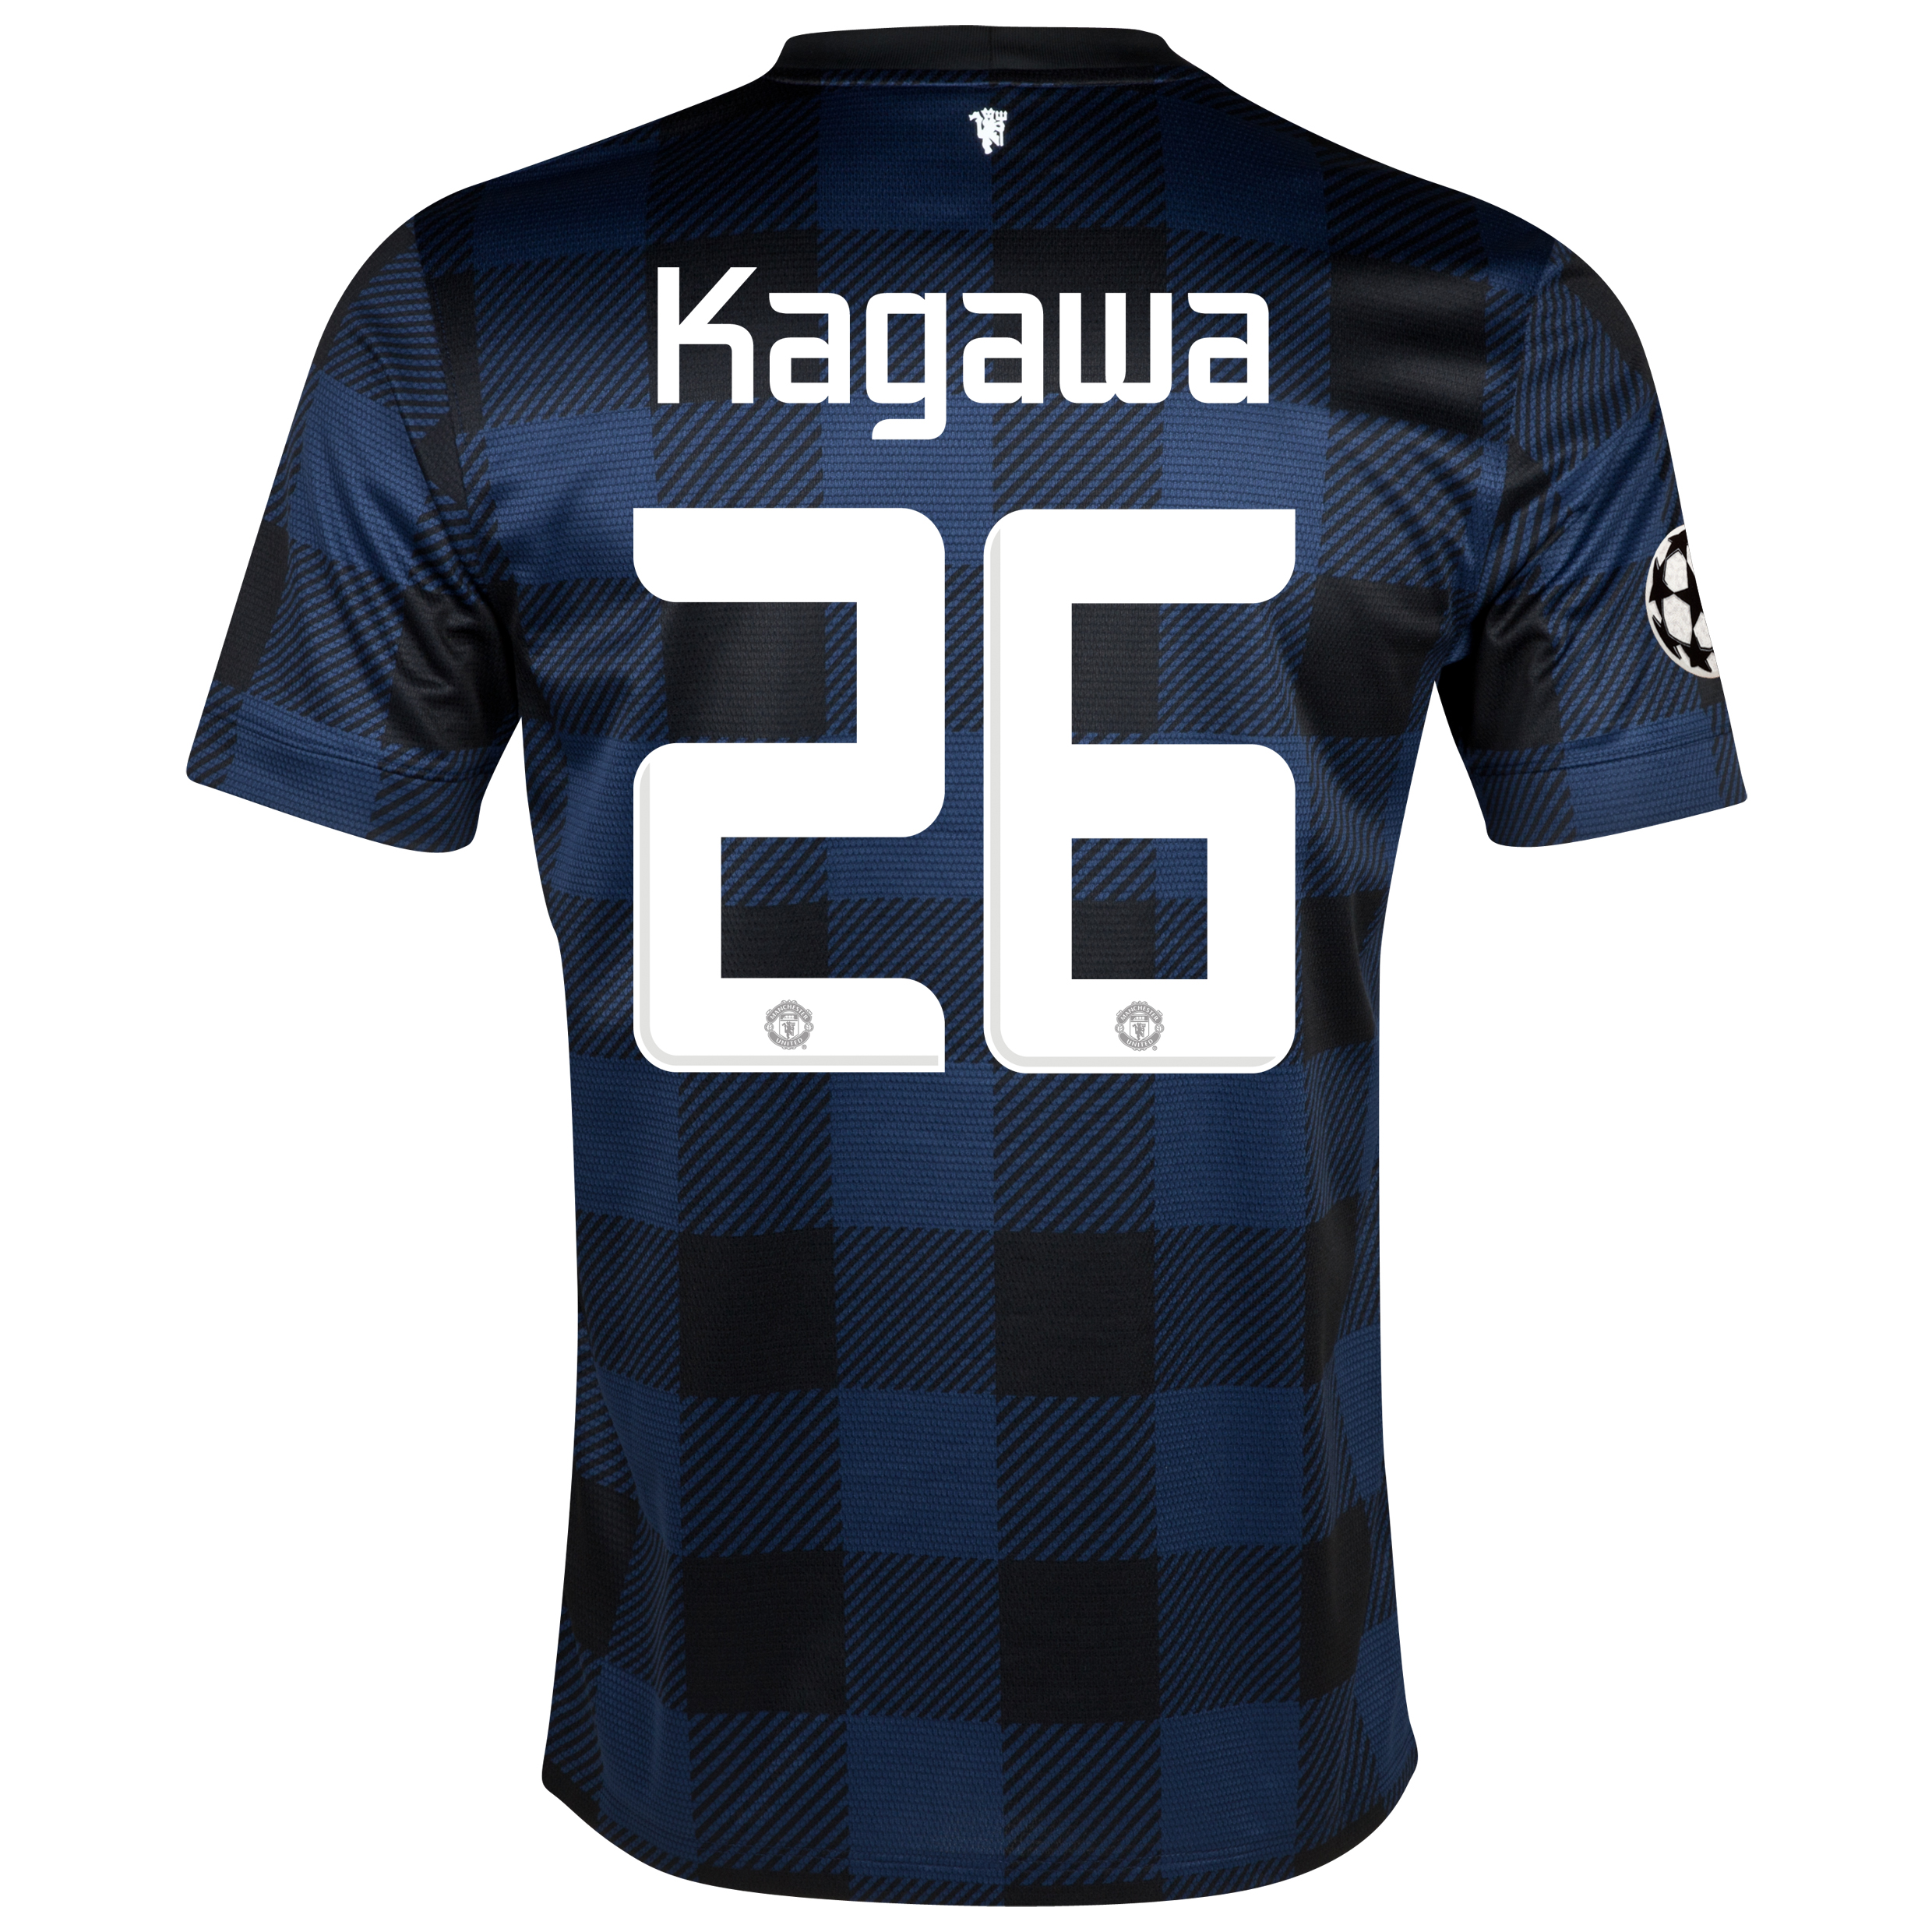 Manchester United UEFA Champions League Away Shirt 2013/14 with Kagawa 26 printing